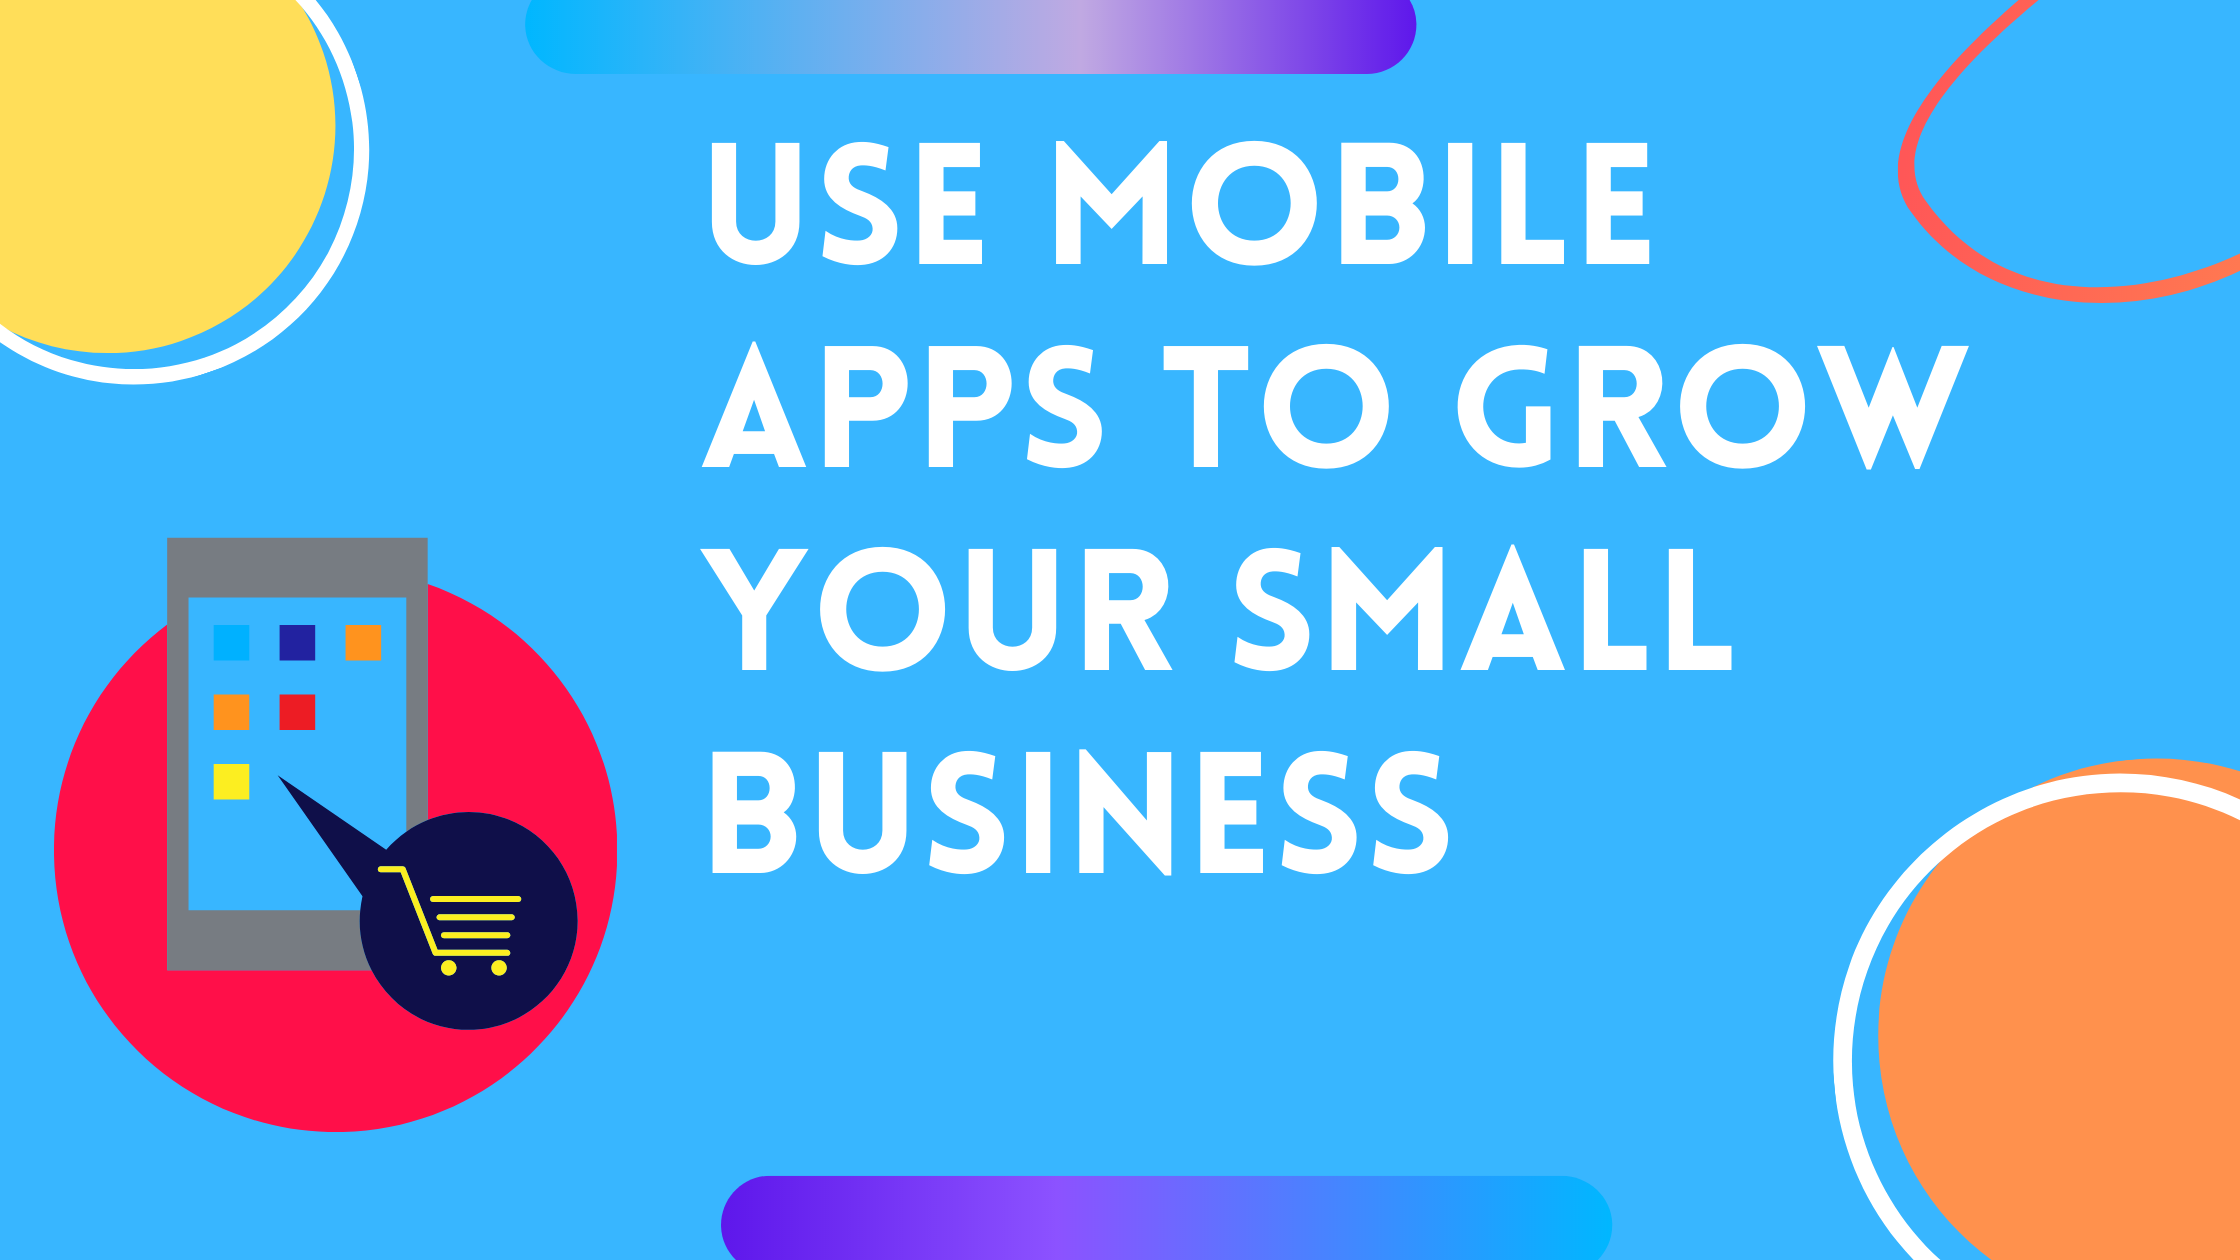 Do You Own A Retail Store? Use Mobile App To See How Small Business Grows